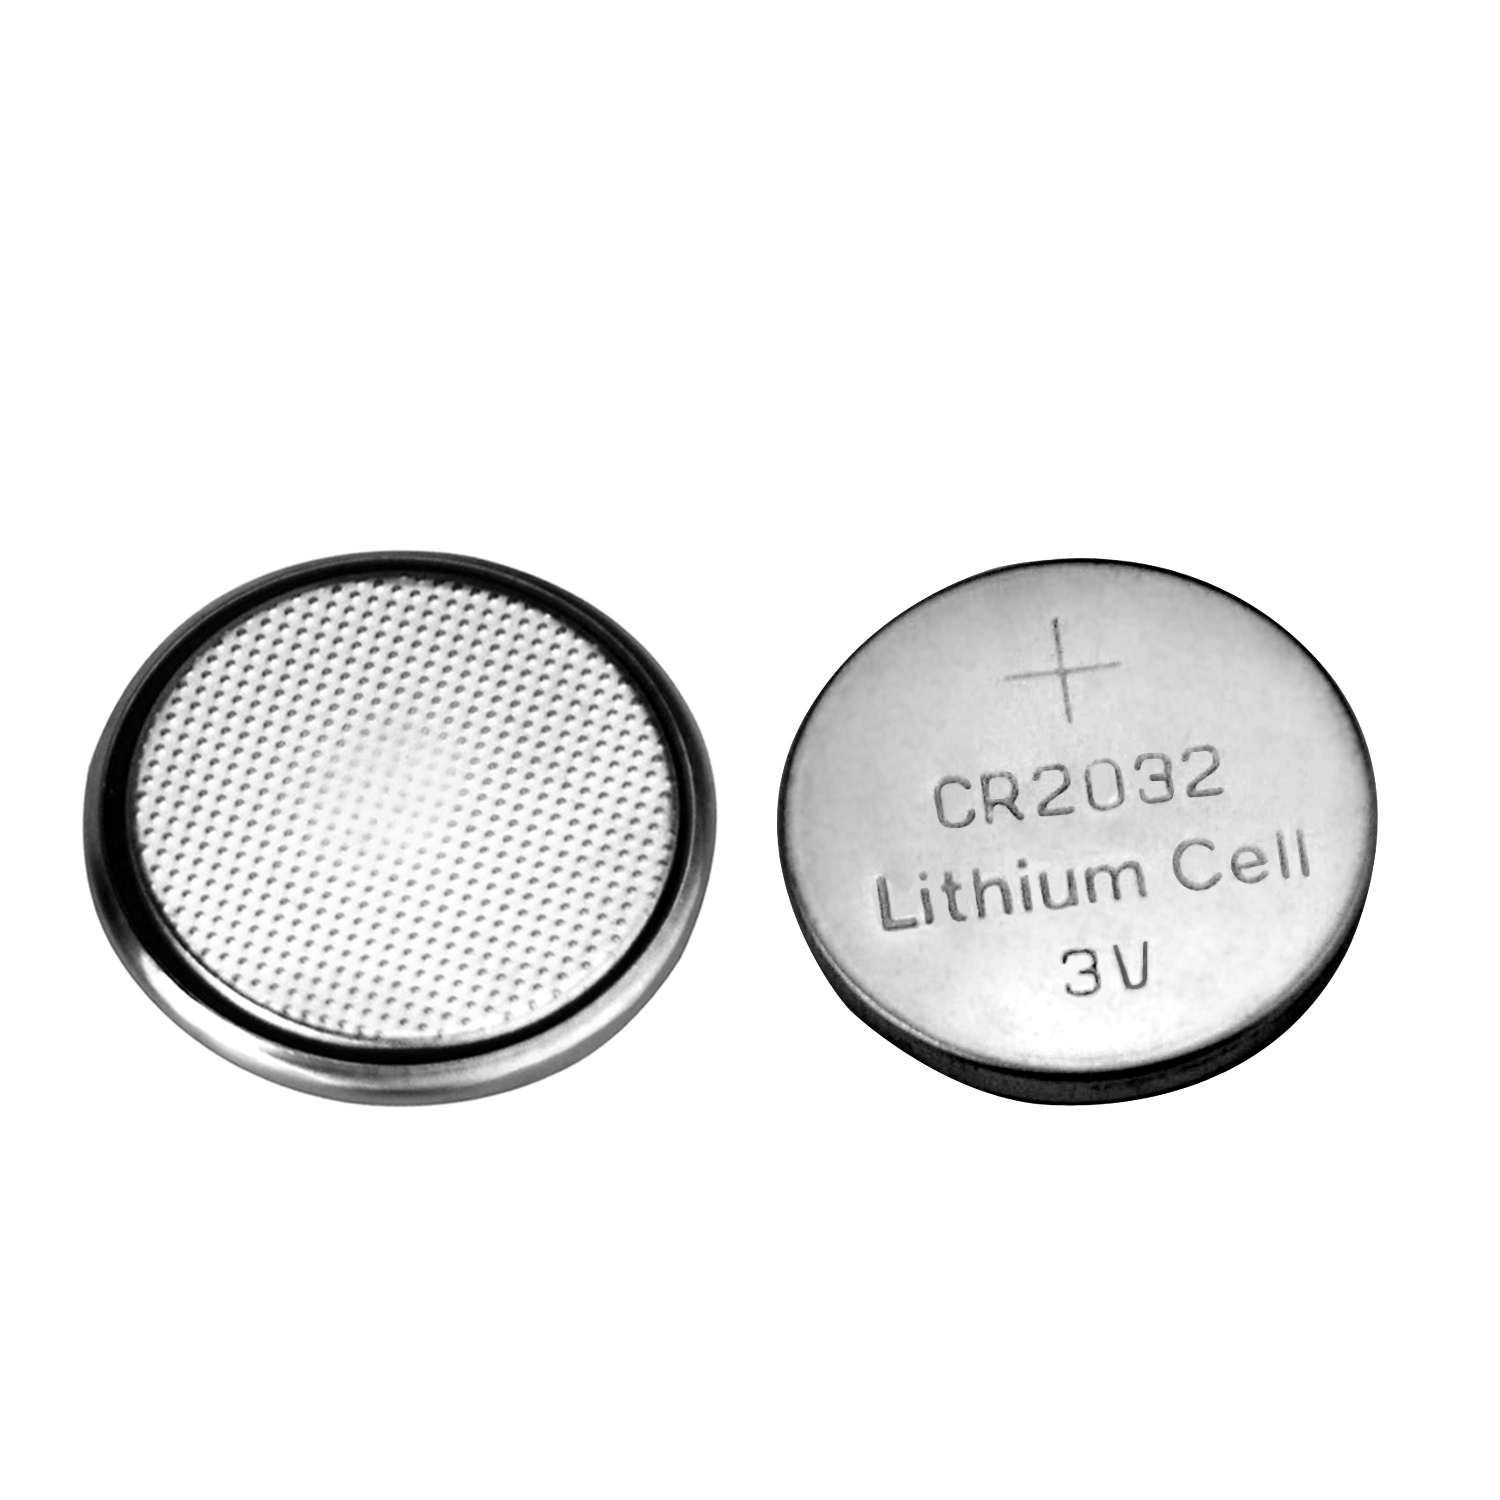 50 pcs cr2032 lithium battery 3v button cell for. Black Bedroom Furniture Sets. Home Design Ideas